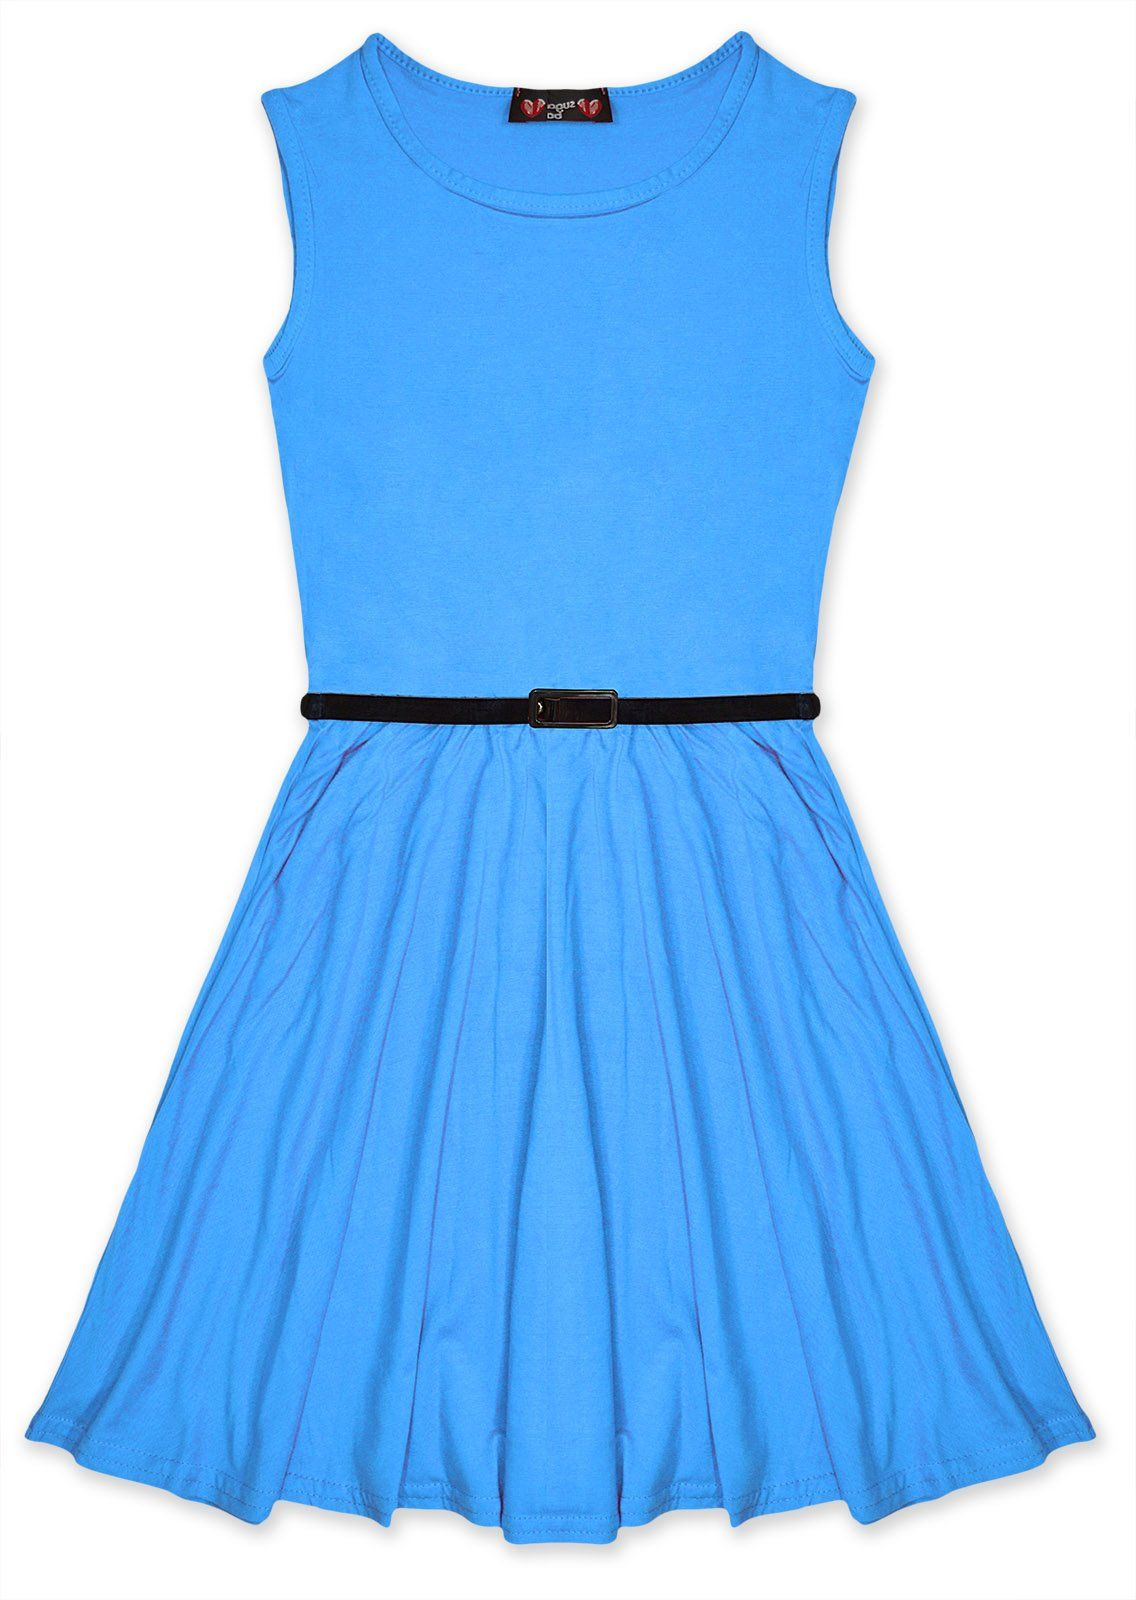 Girls Skater Dress Kids Party Dresses Belted New Age 7 8 9